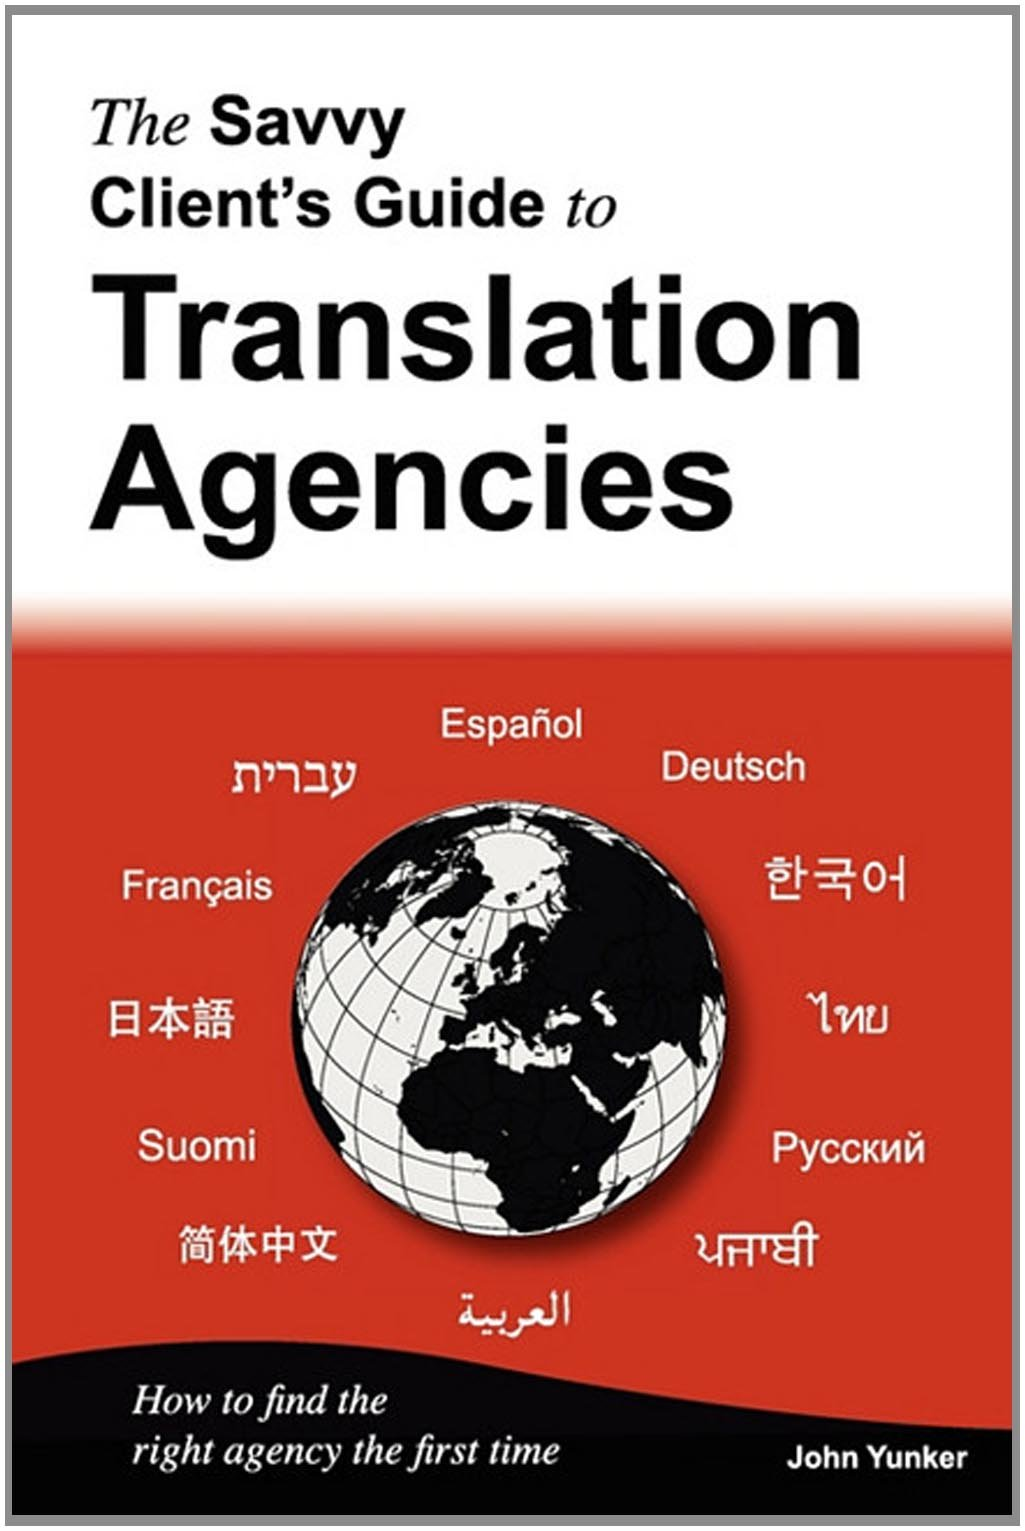 The Savvy Client's Guide to Translation Agencies: How to find the right translation agency the first time by Brand: Byte Level Books